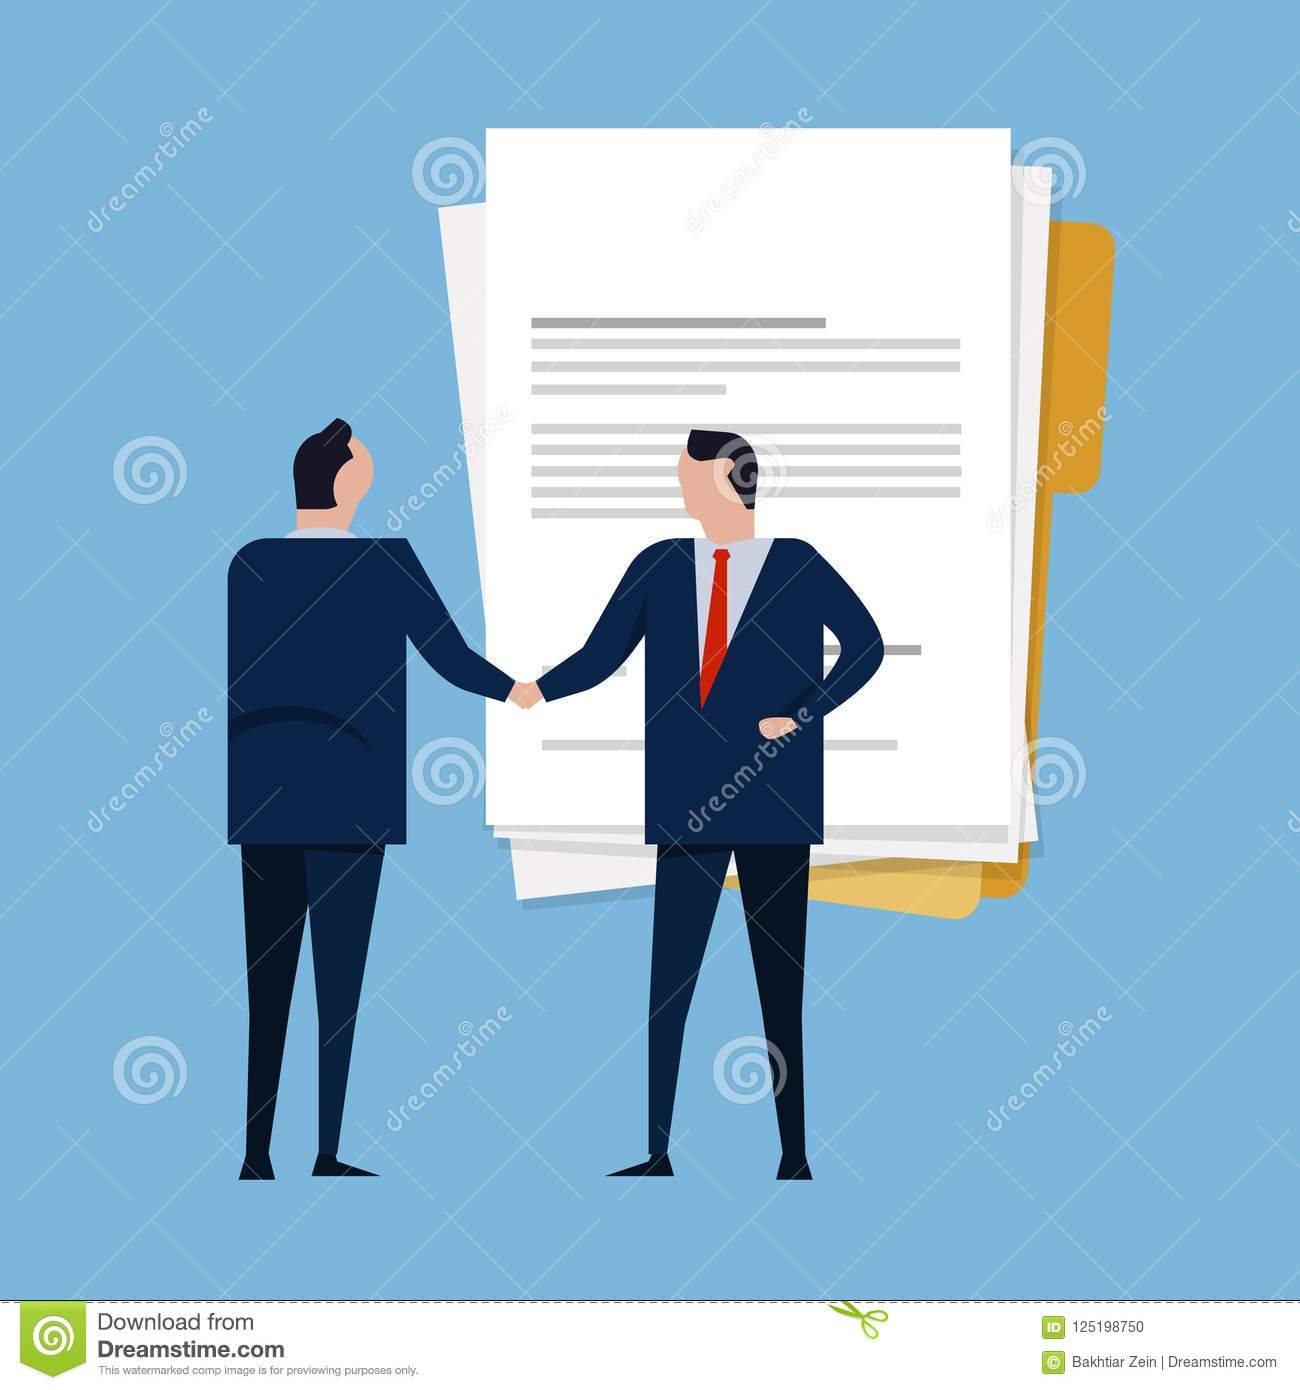 Contract paper document agreement. Business people standing handshake wearing suite formal. Concept business vector